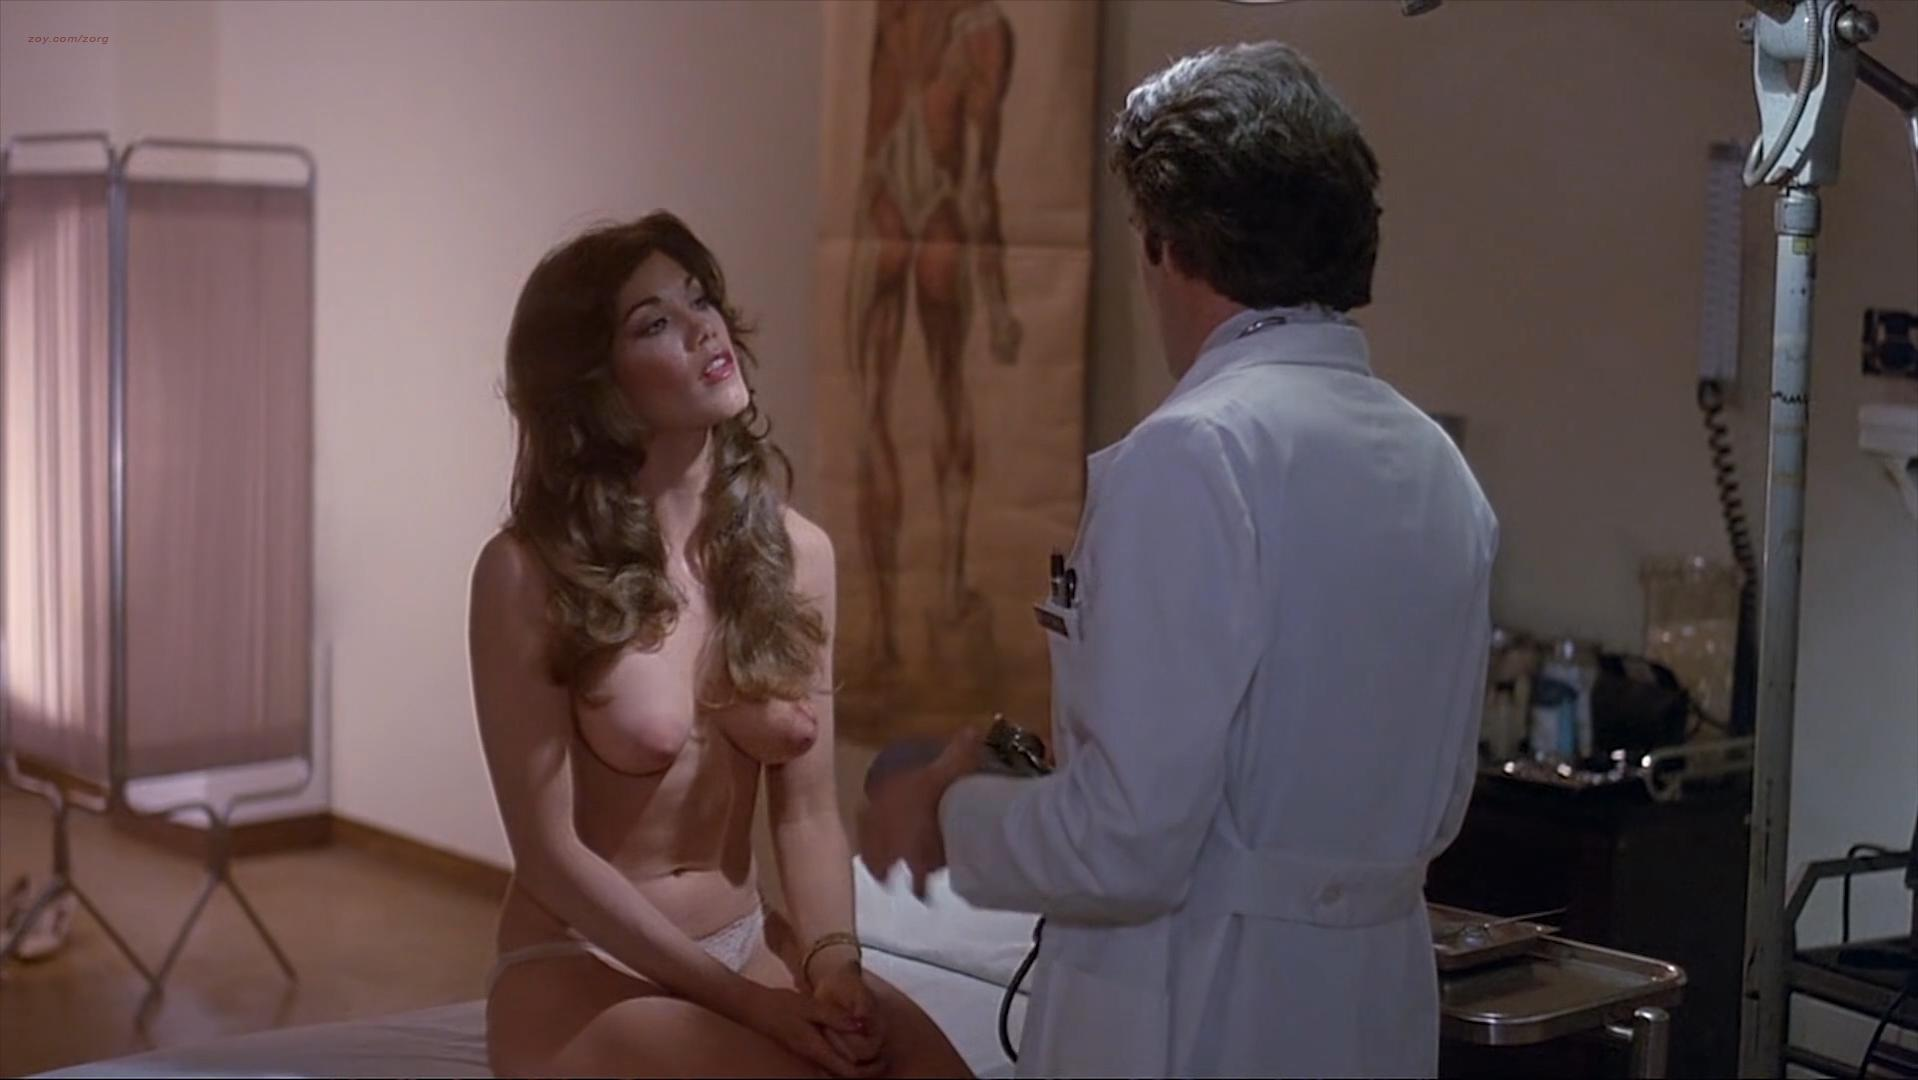 Bathrobe barbi benton nudes